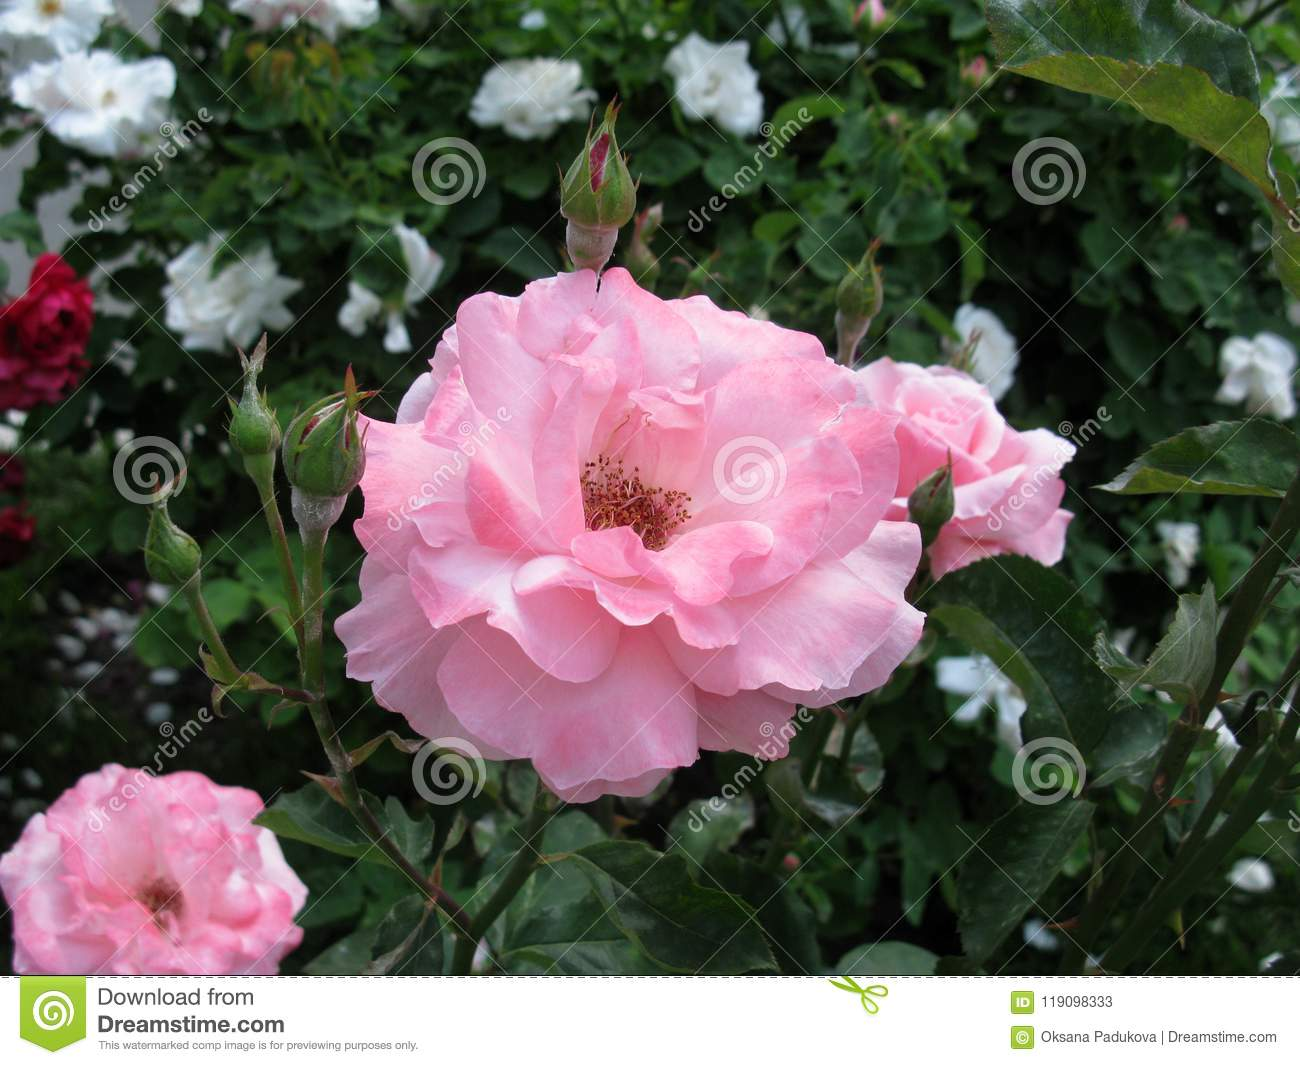 pink and wight roses in a garden stock image image of garden